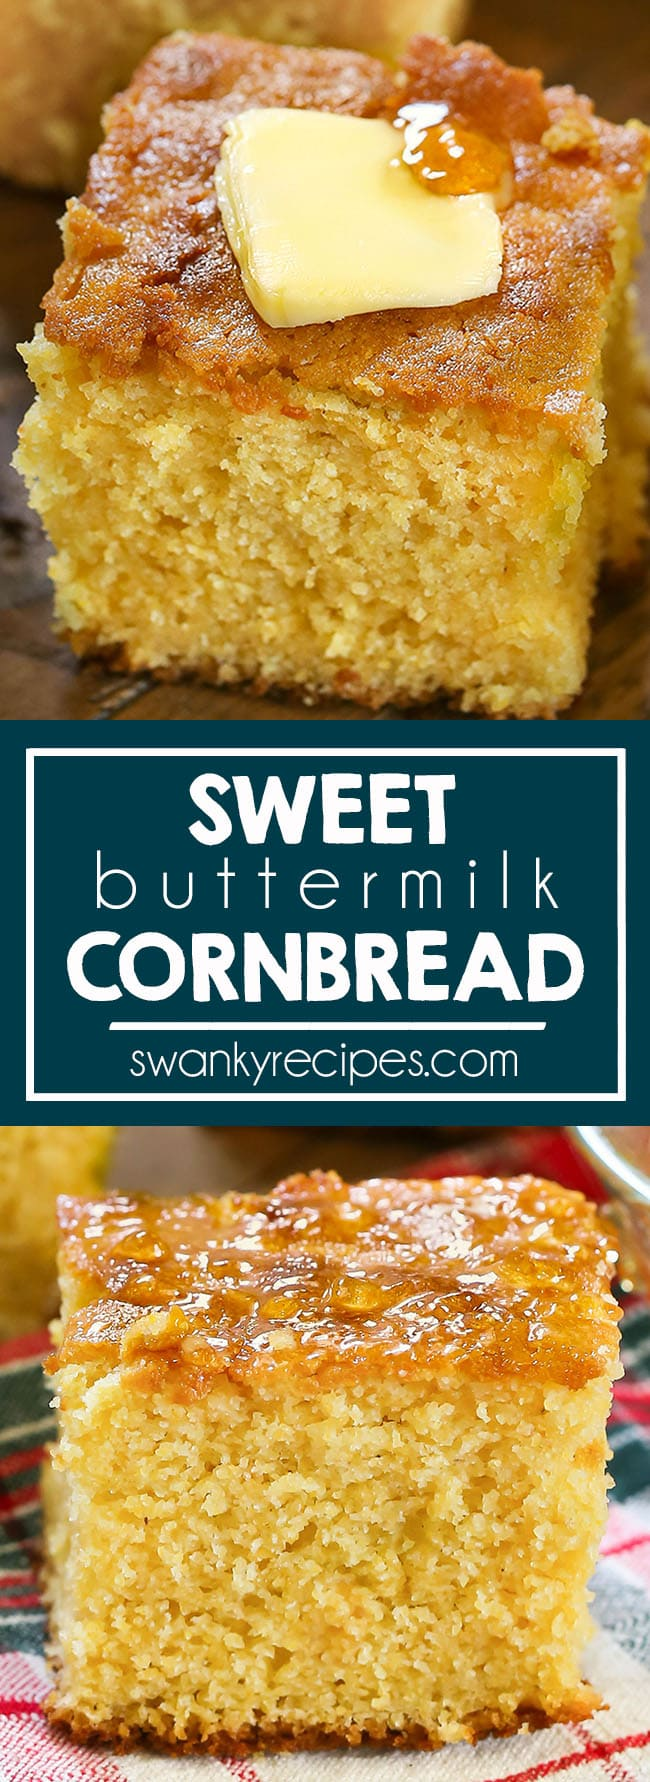 A square piece of cornbread served with a pat of butter and a touch of honey on top. Text in center reads sweet buttermilk cornbread. Second image is a view of cornbread served on a red, green, and white Christmas napkin. Top is glazed in honey.